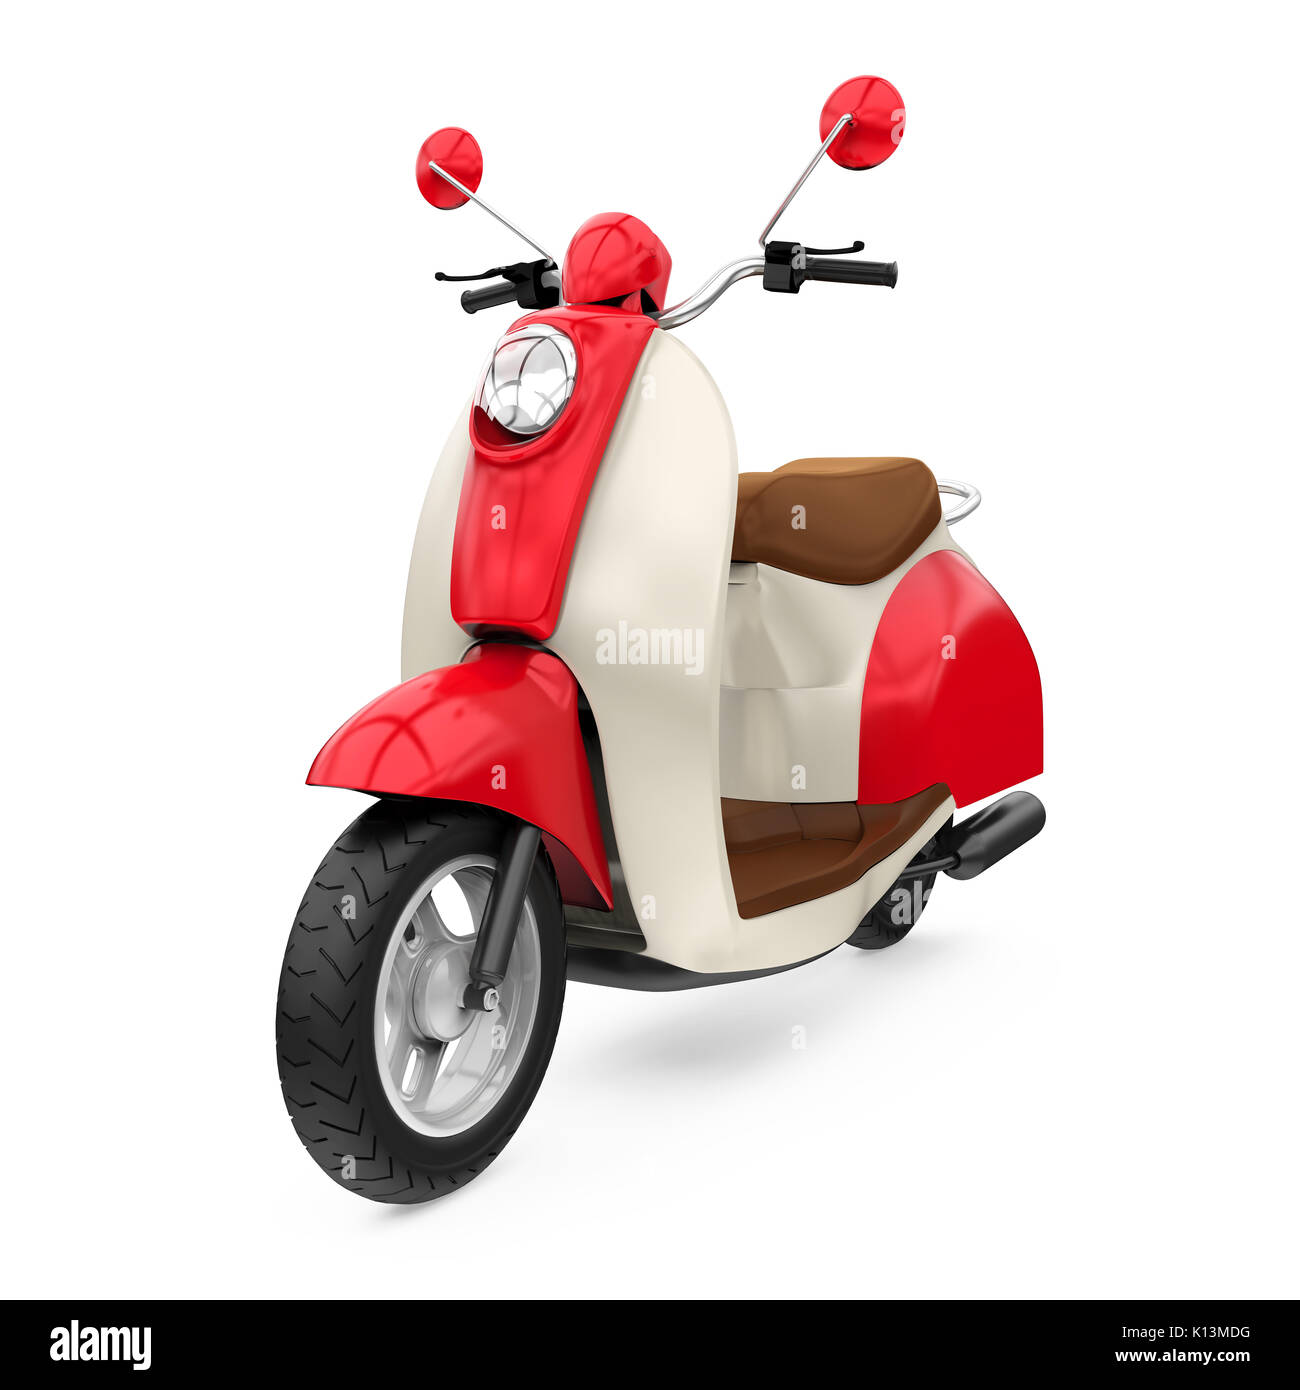 Classic Scooter Stock Photos & Classic Scooter Stock Images - Alamy